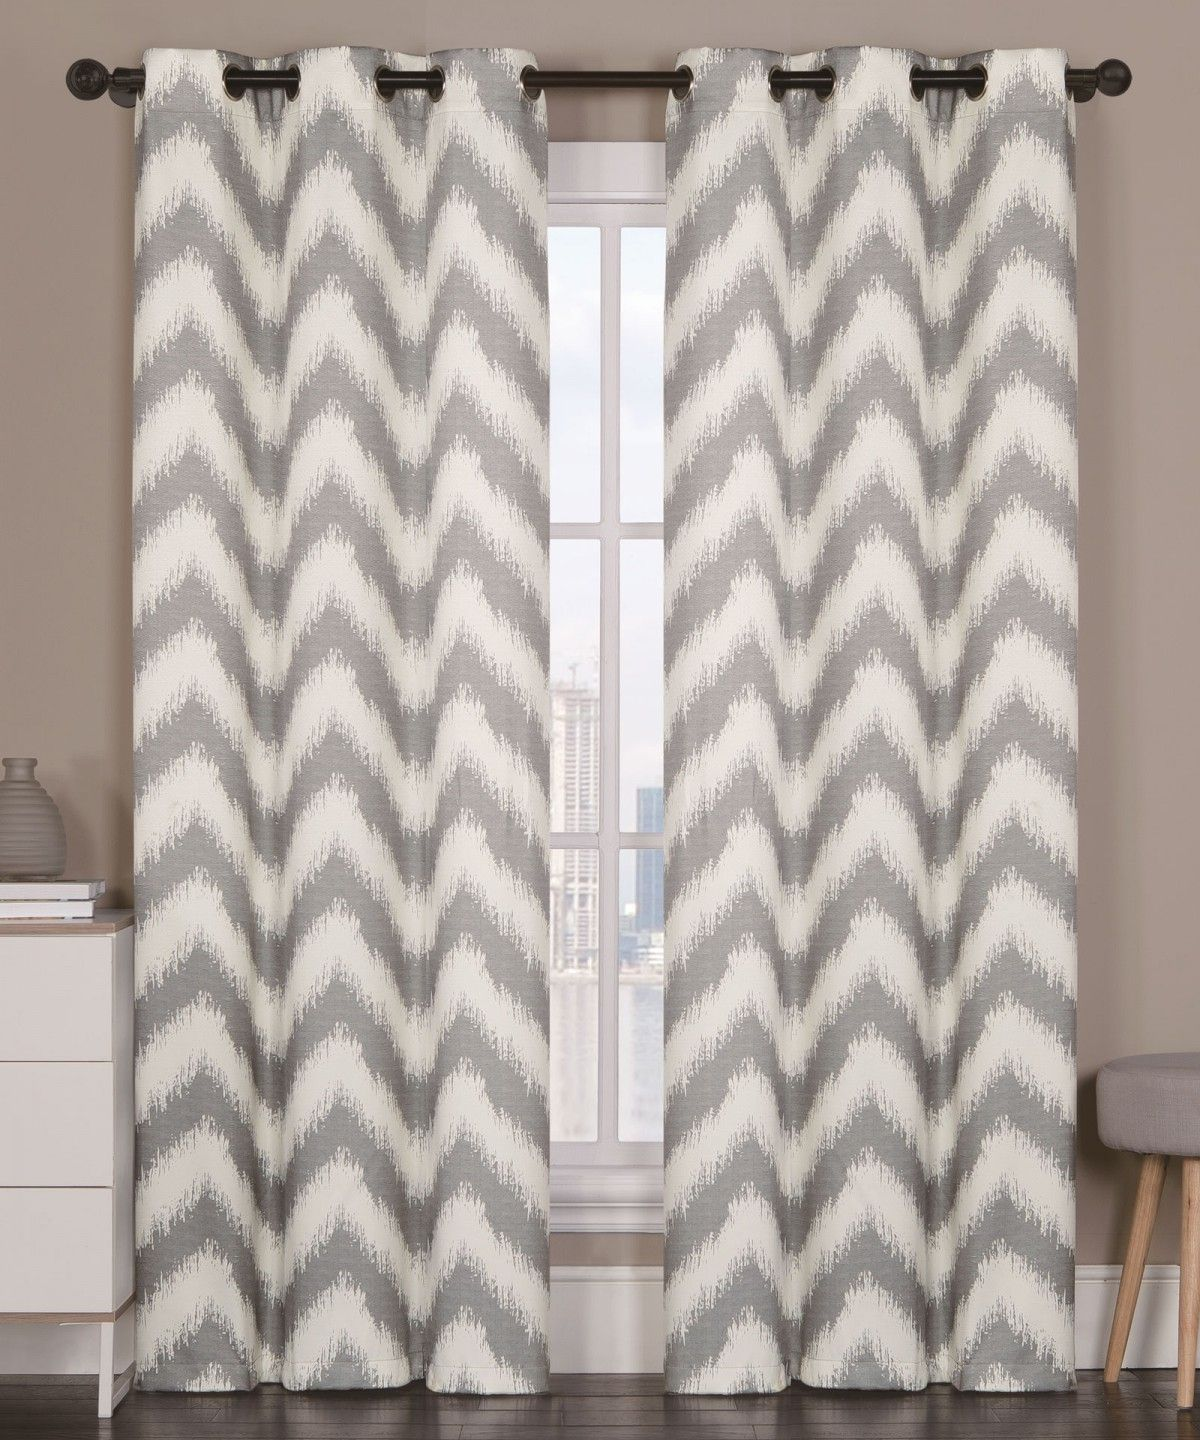 Vcny Athens Blackout Window Curtains Grommet Thermal 2 Panel Set Gray Chevron 84